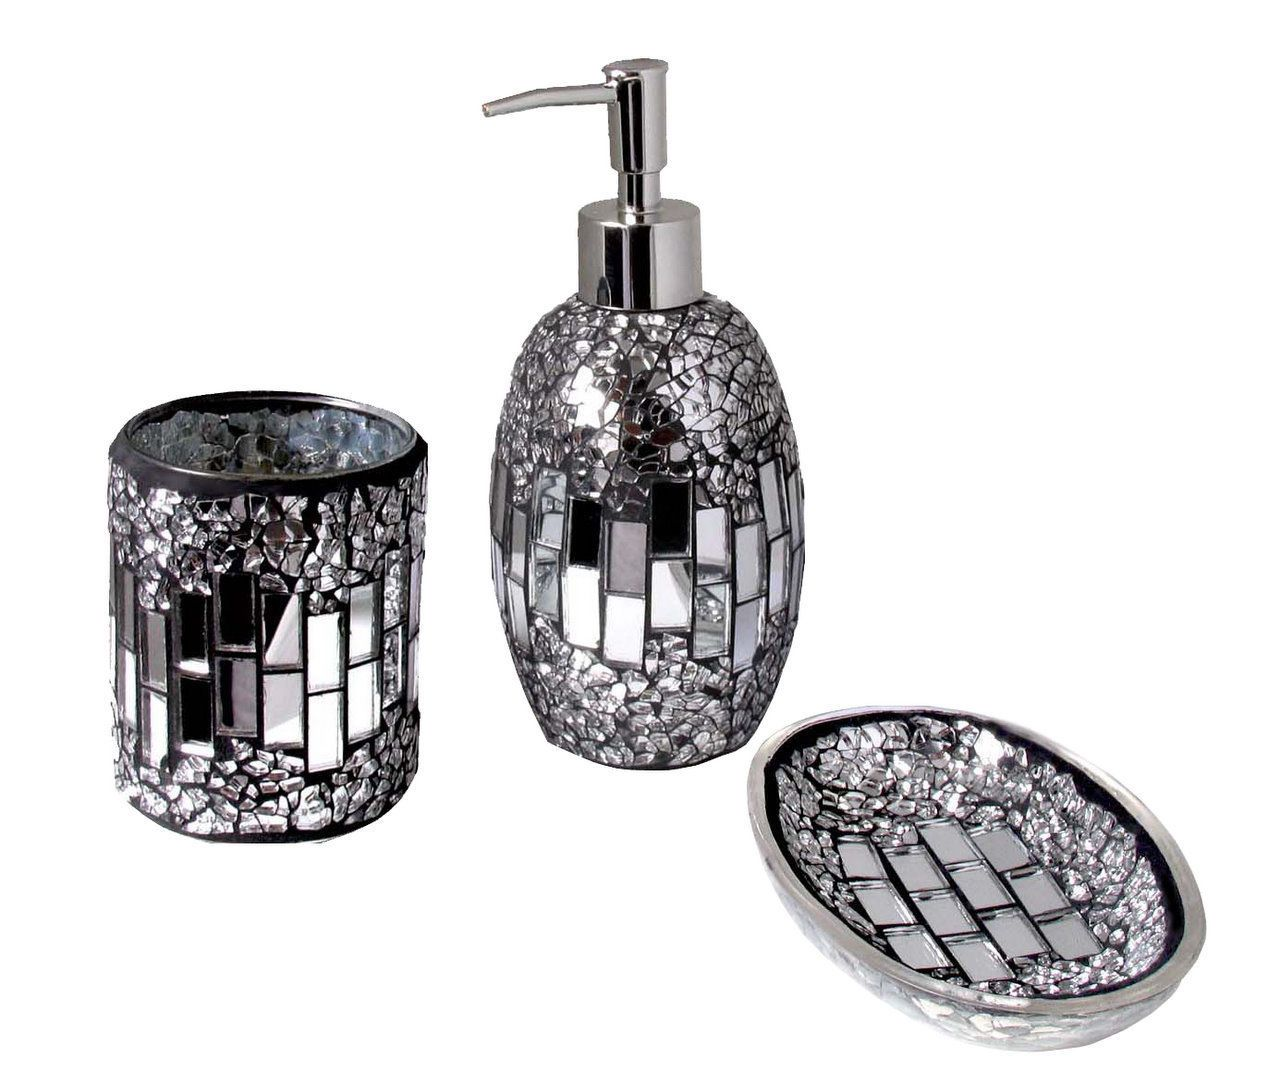 3pc modern silver black sparkle mosaic glass tile bathroom accessory set  deco